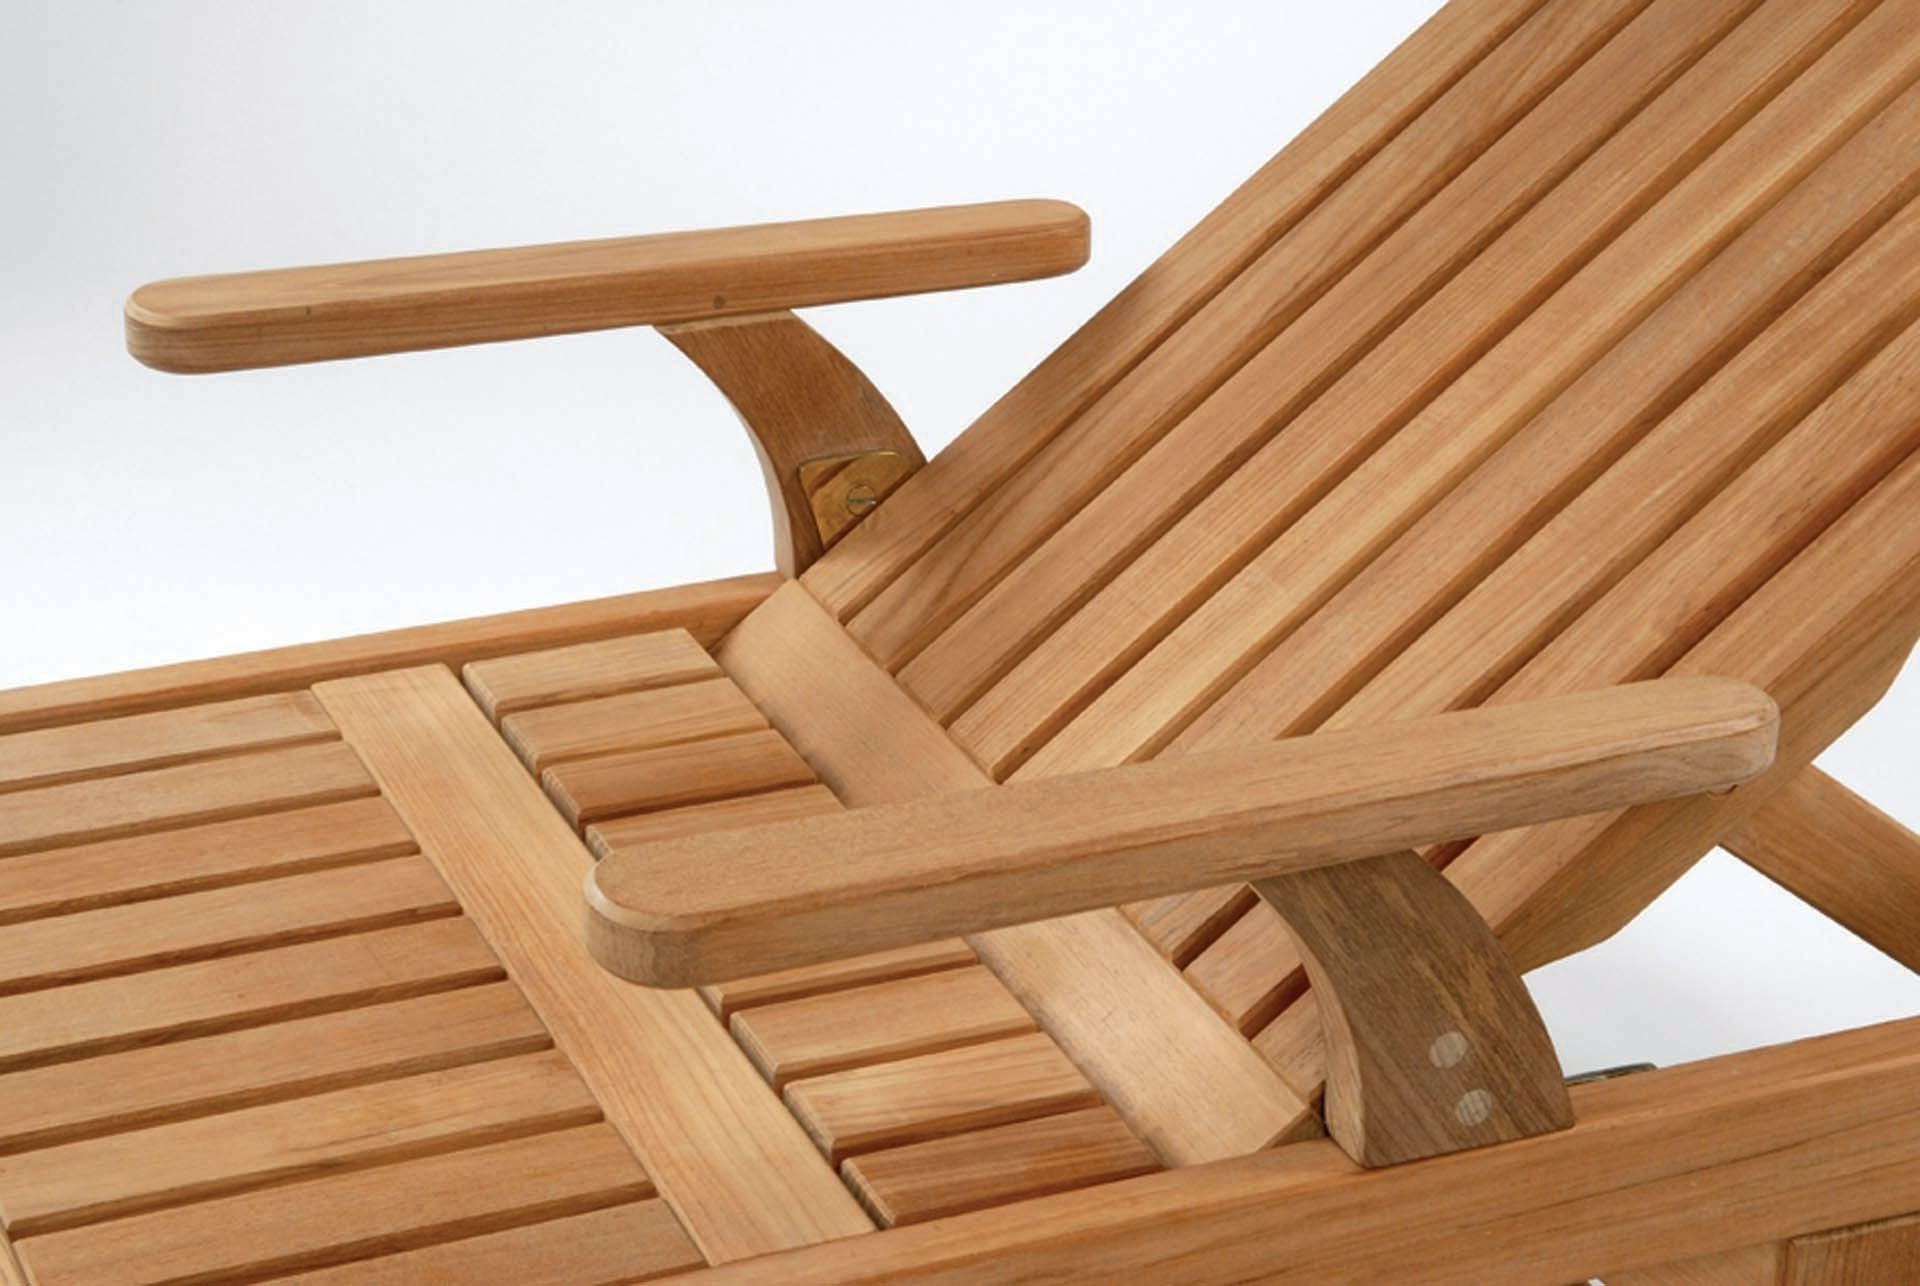 Teak Chaise Lounge Chairs Pertaining To Fashionable Teak Sling Chaise Lounge — Teak Furnitures : Outdoor Teak Lounge (View 13 of 15)